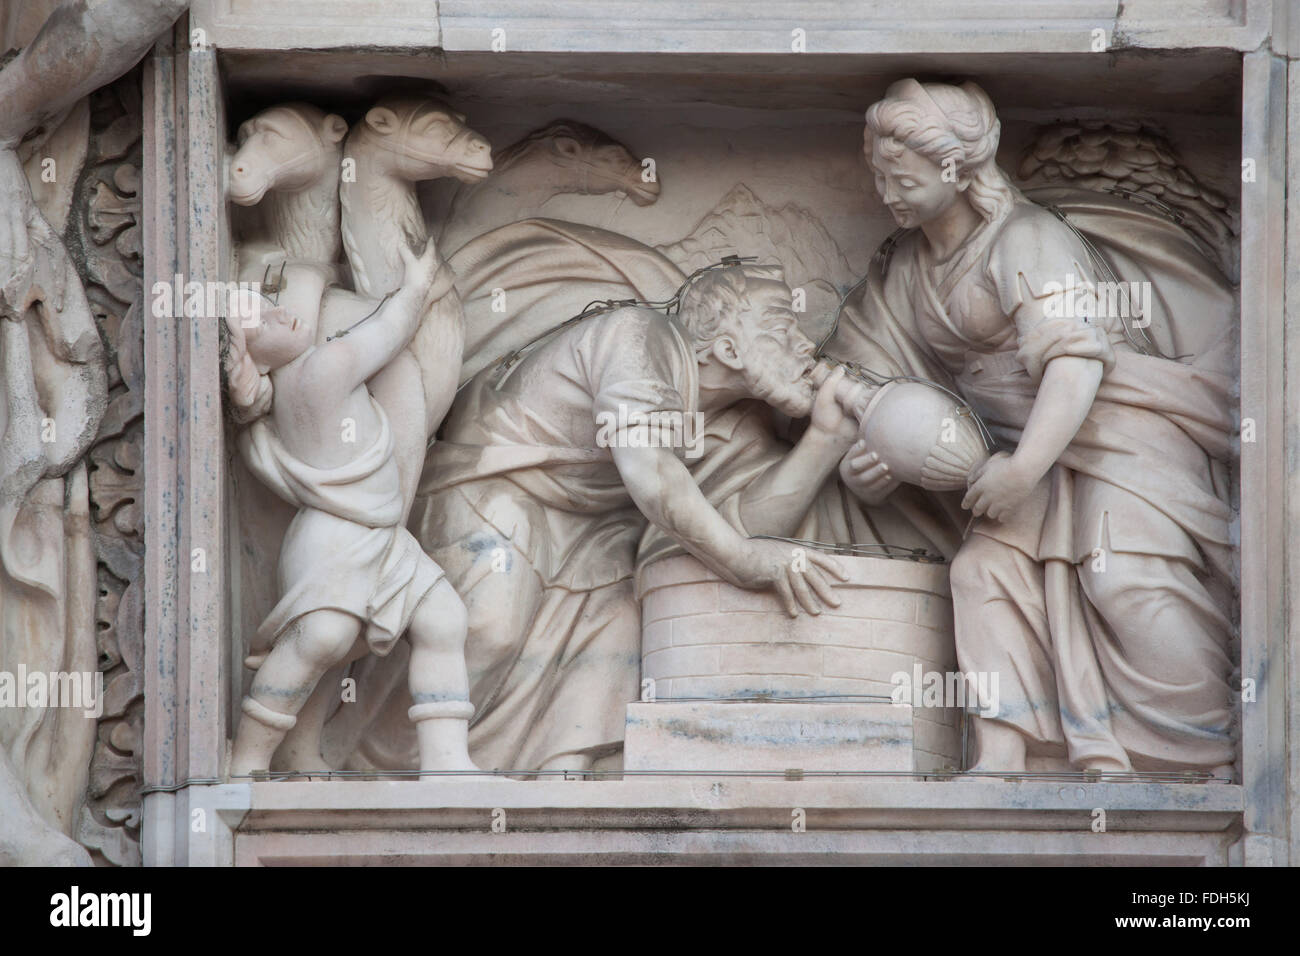 Rebecca at the well. Marble relief on the main facade of the Milan Cathedral (Duomo di Milano) in Milan, Lombardy, - Stock Image